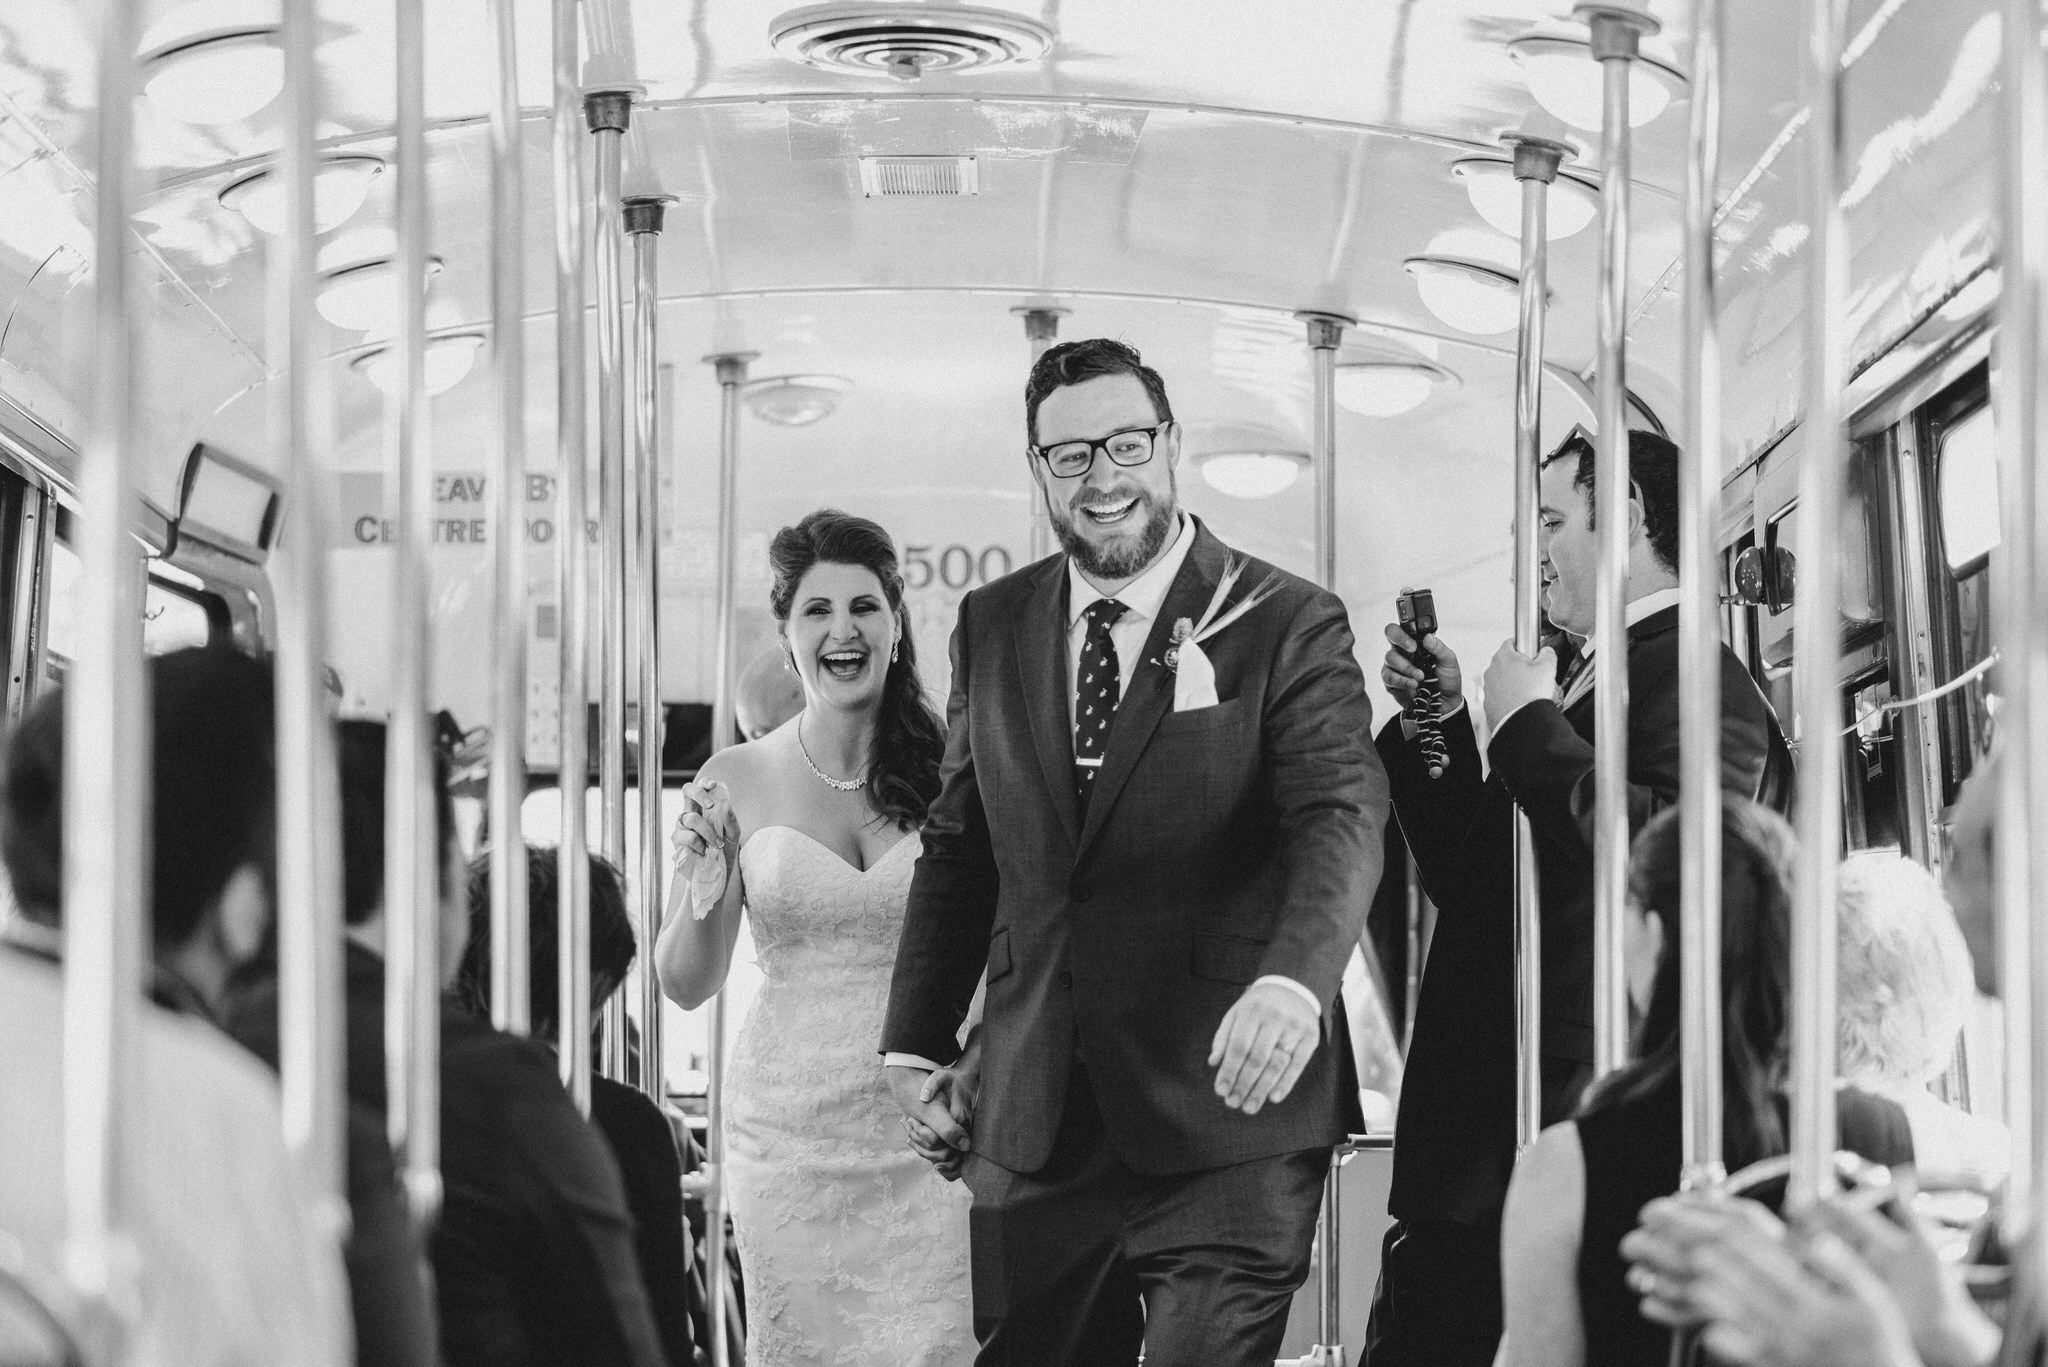 The bride and groom walk down the aisle after their Vintage Toronto Streetcar Wedding Ceremony